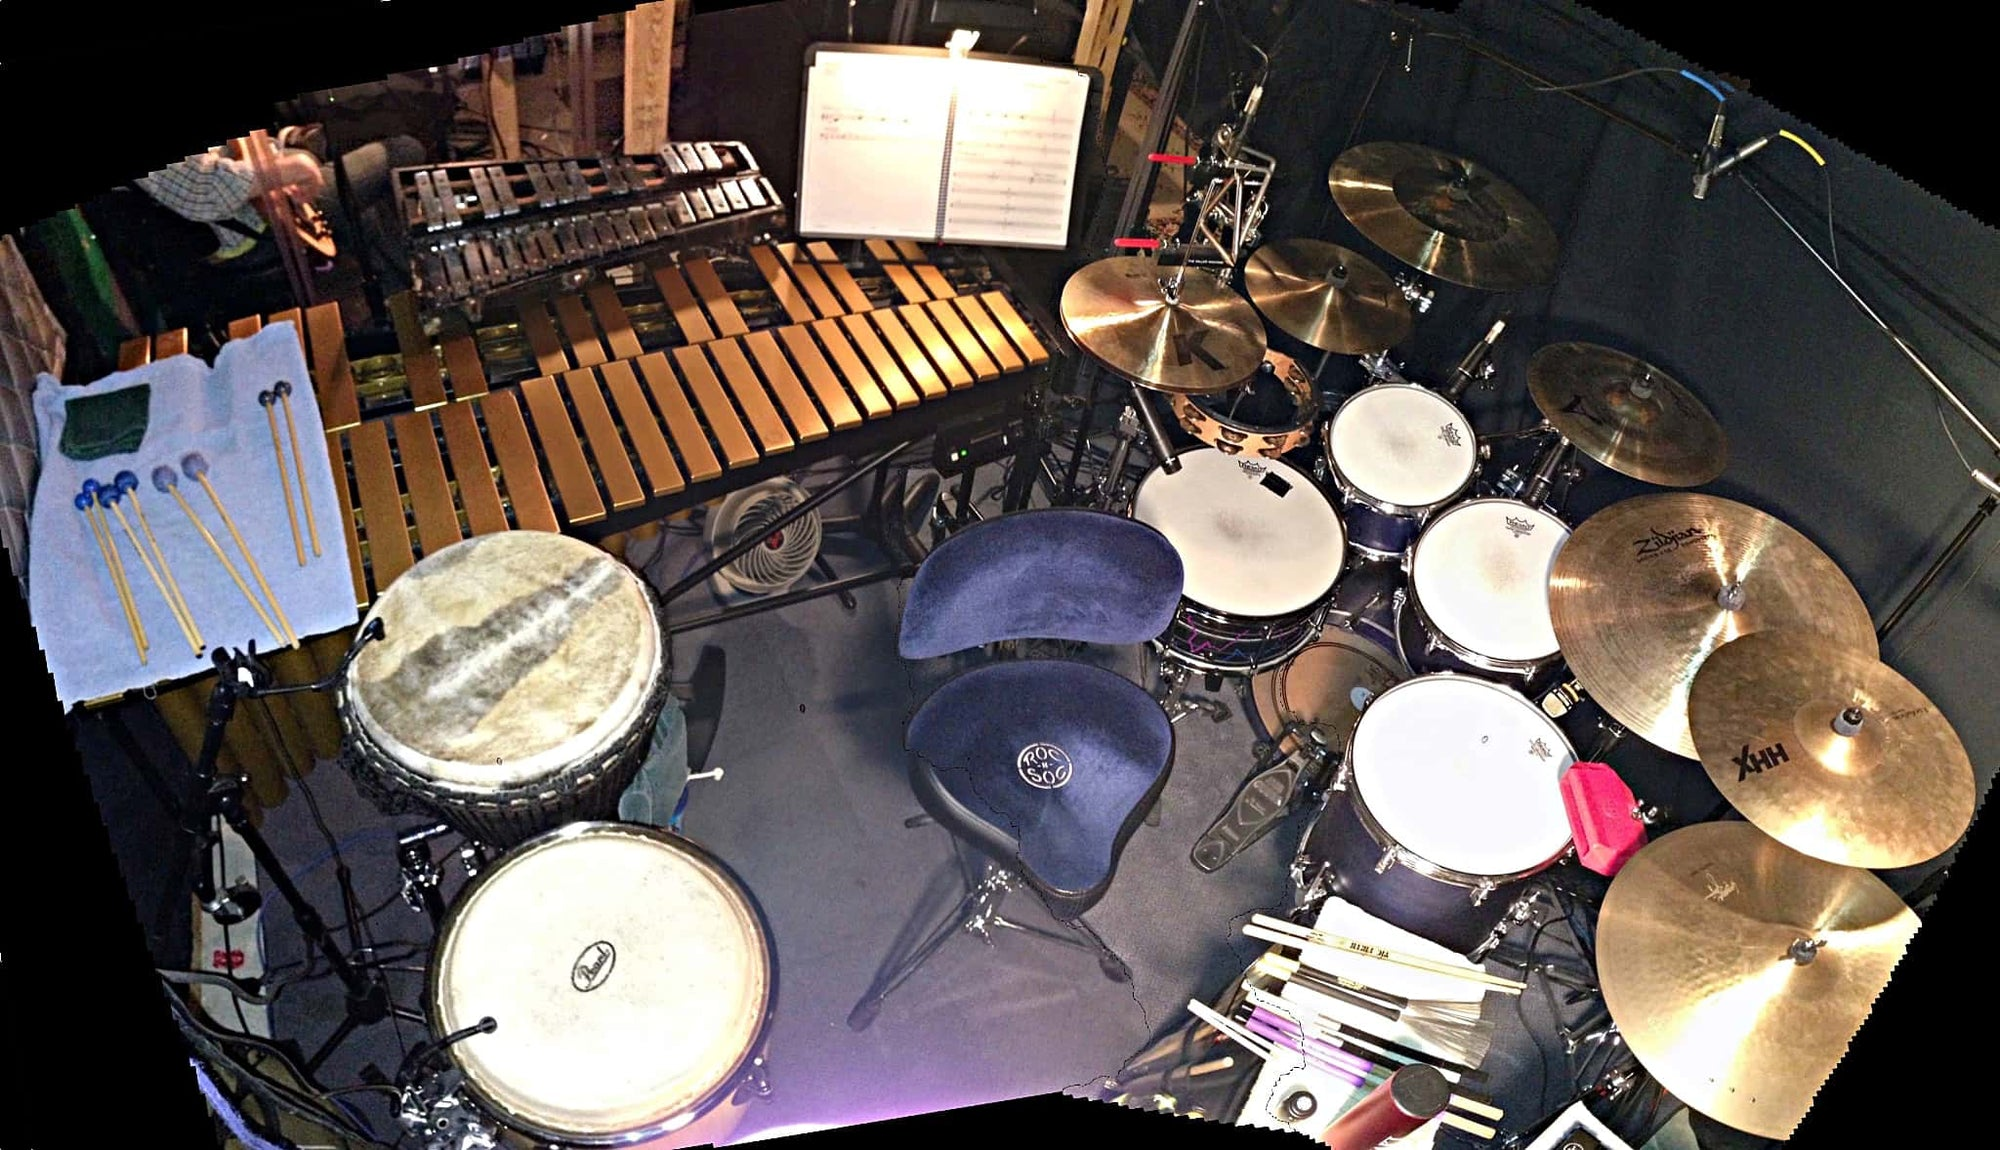 Jason Degenhardt's setup for Next To Normal at Topeka Civic Theatre, in Topeka, Kansas.